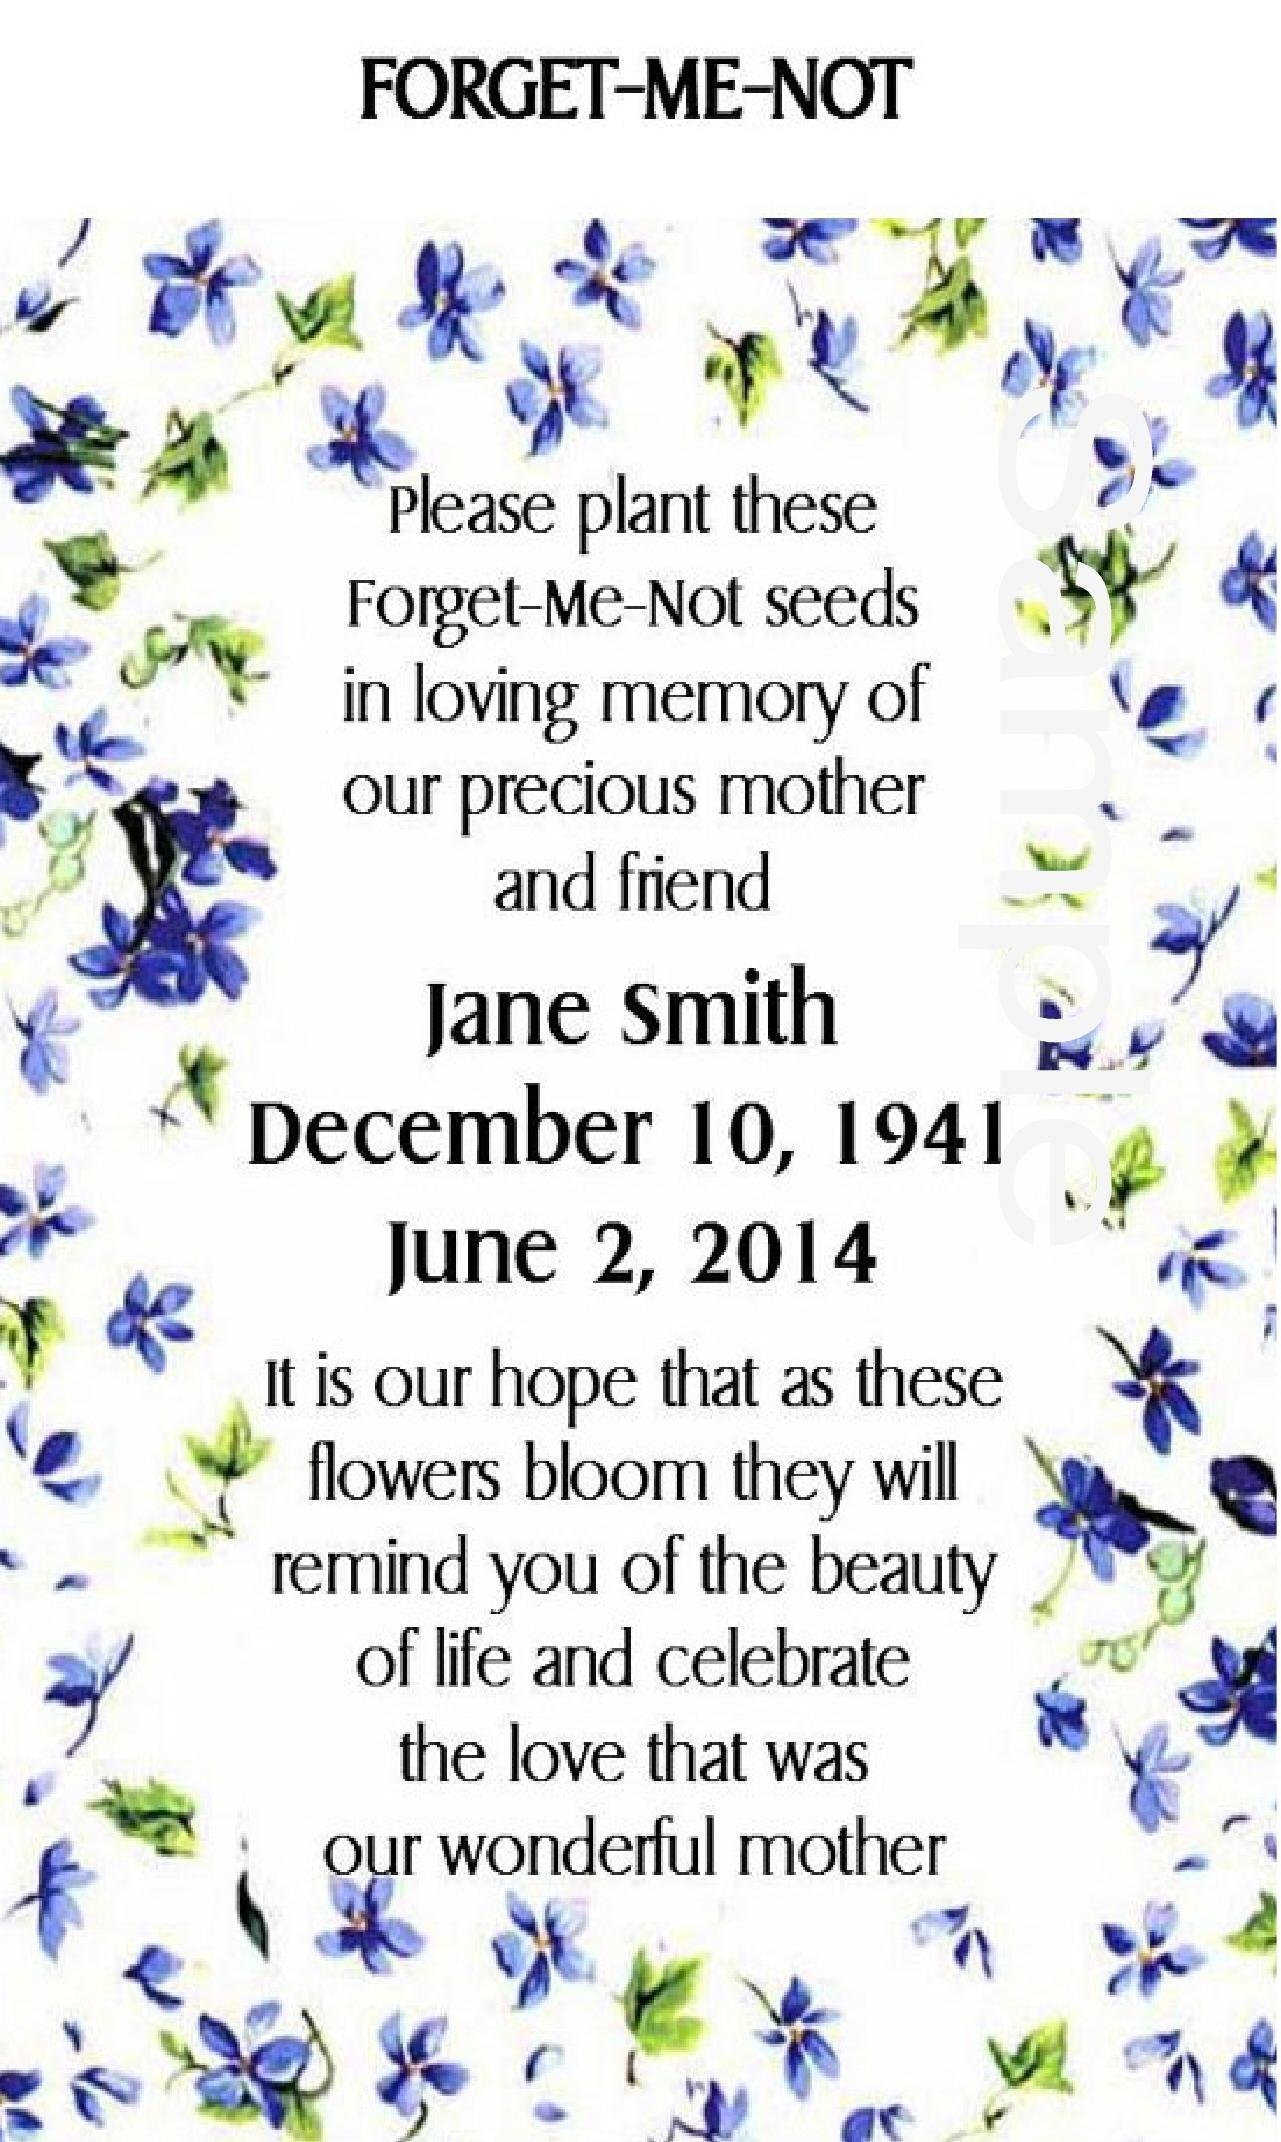 Memorial Funeral Forget-Me-Not Seed Packets by Partyfavorsforall Handmade